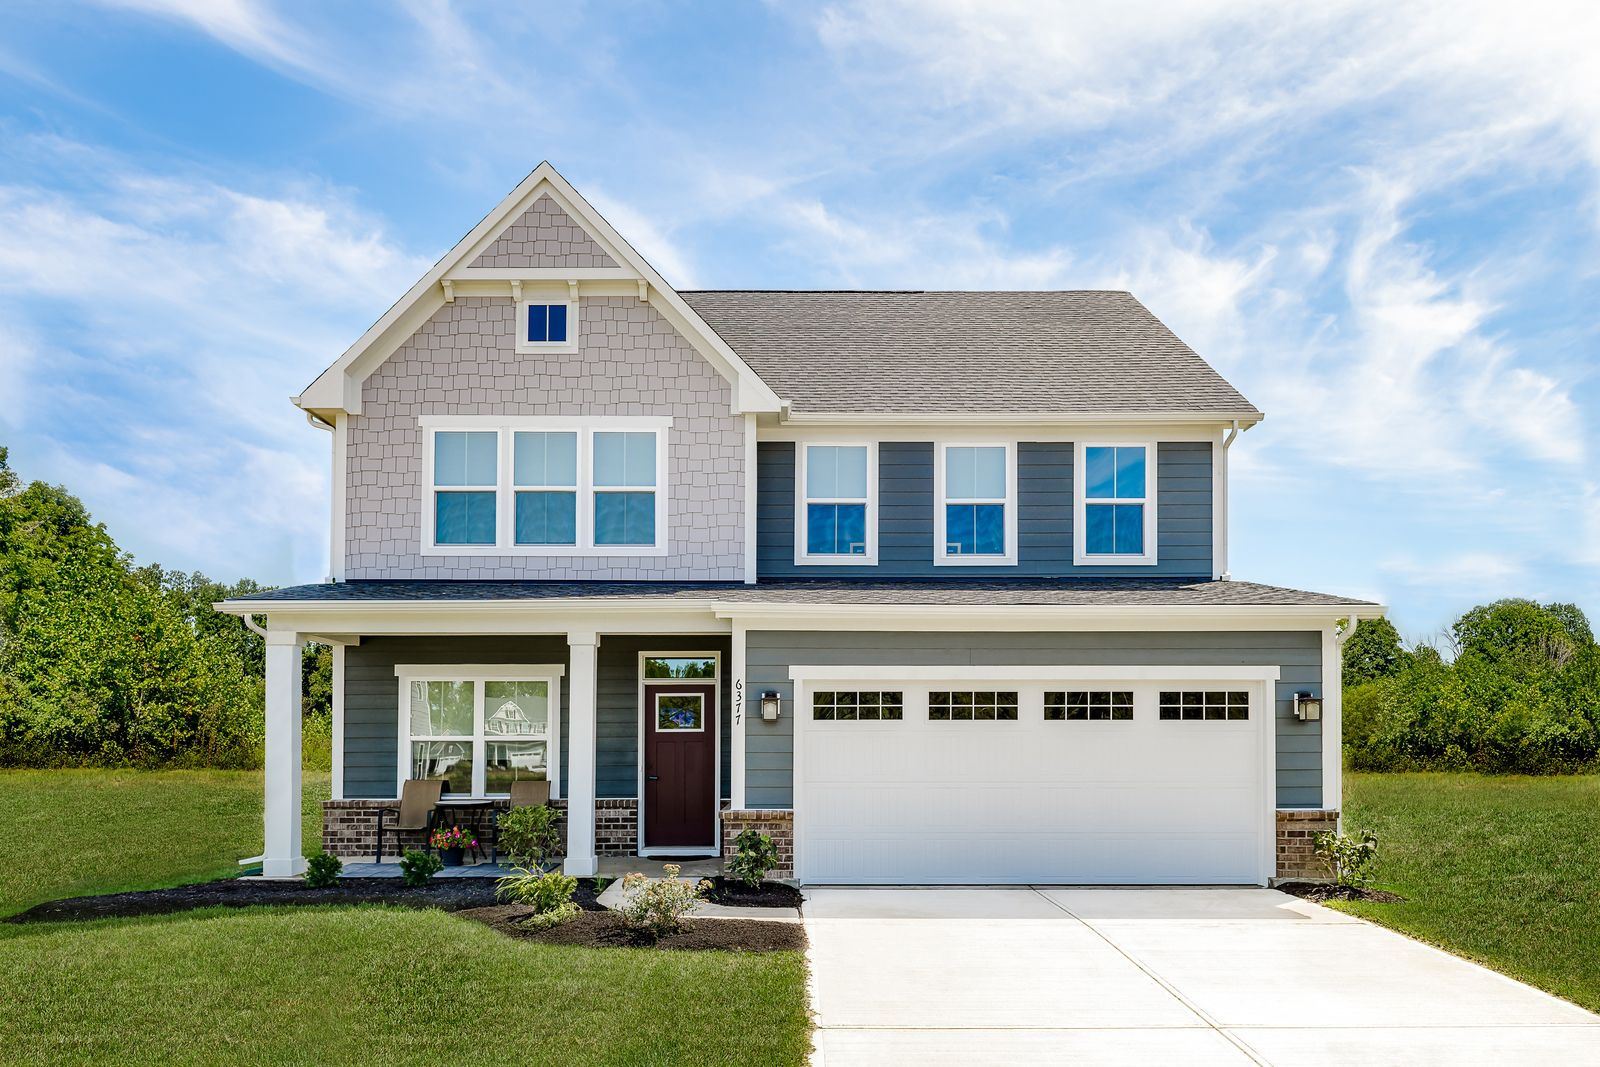 NEW HOMES IN WESTFIELD, FROM THE UPPER $200s:Own a brand new 2-story homein an amenity filled community and in an ideal Westfield location. Near US-31 & SR-32.Click here to learn more!